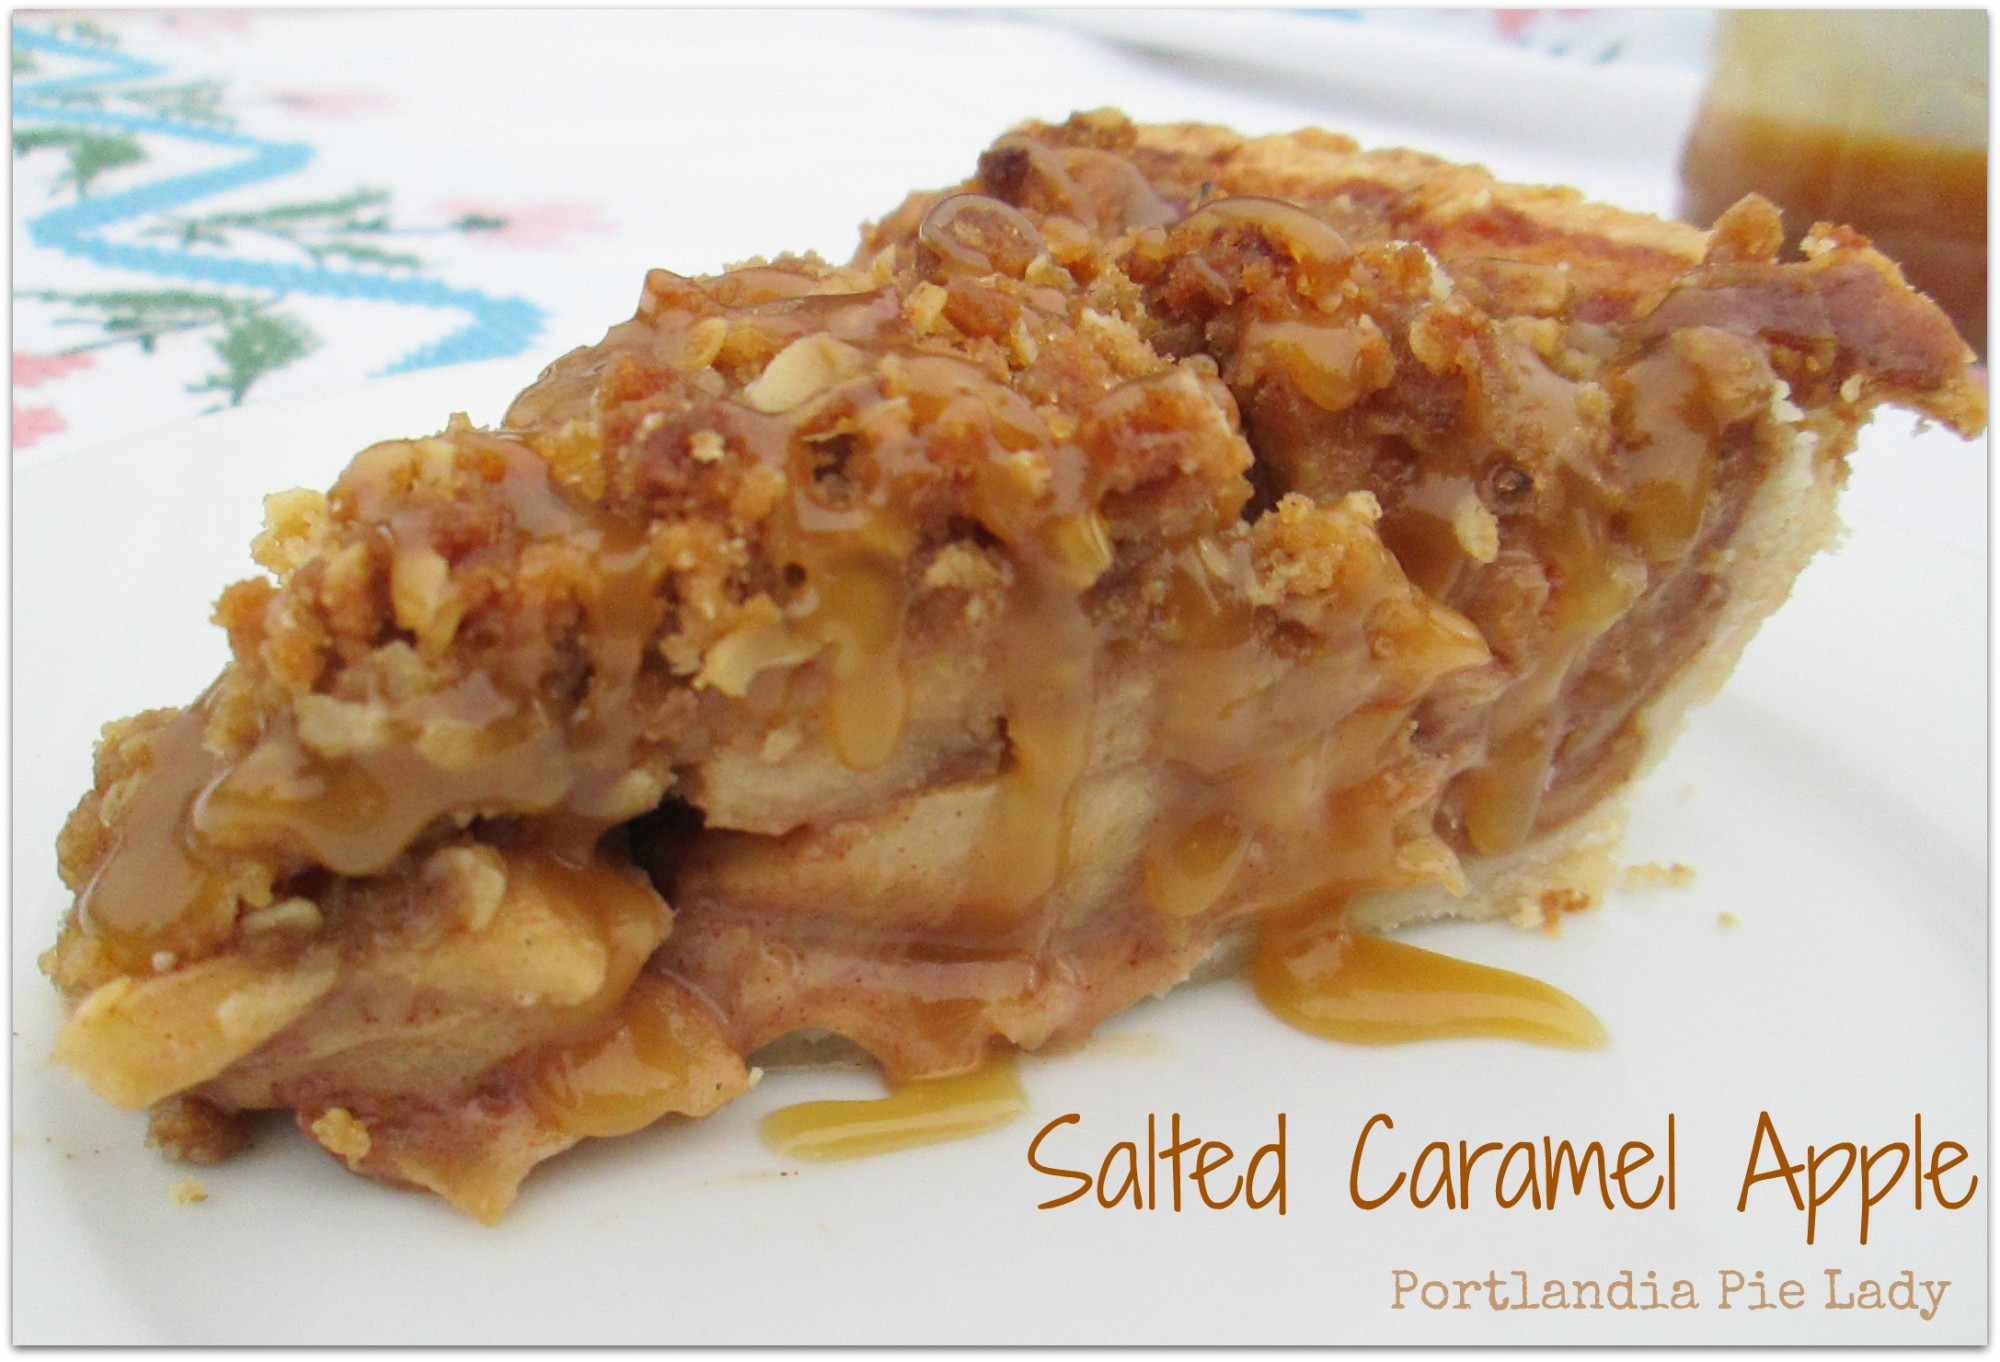 Salted Caramel Apple - Portlandia Pie Lady